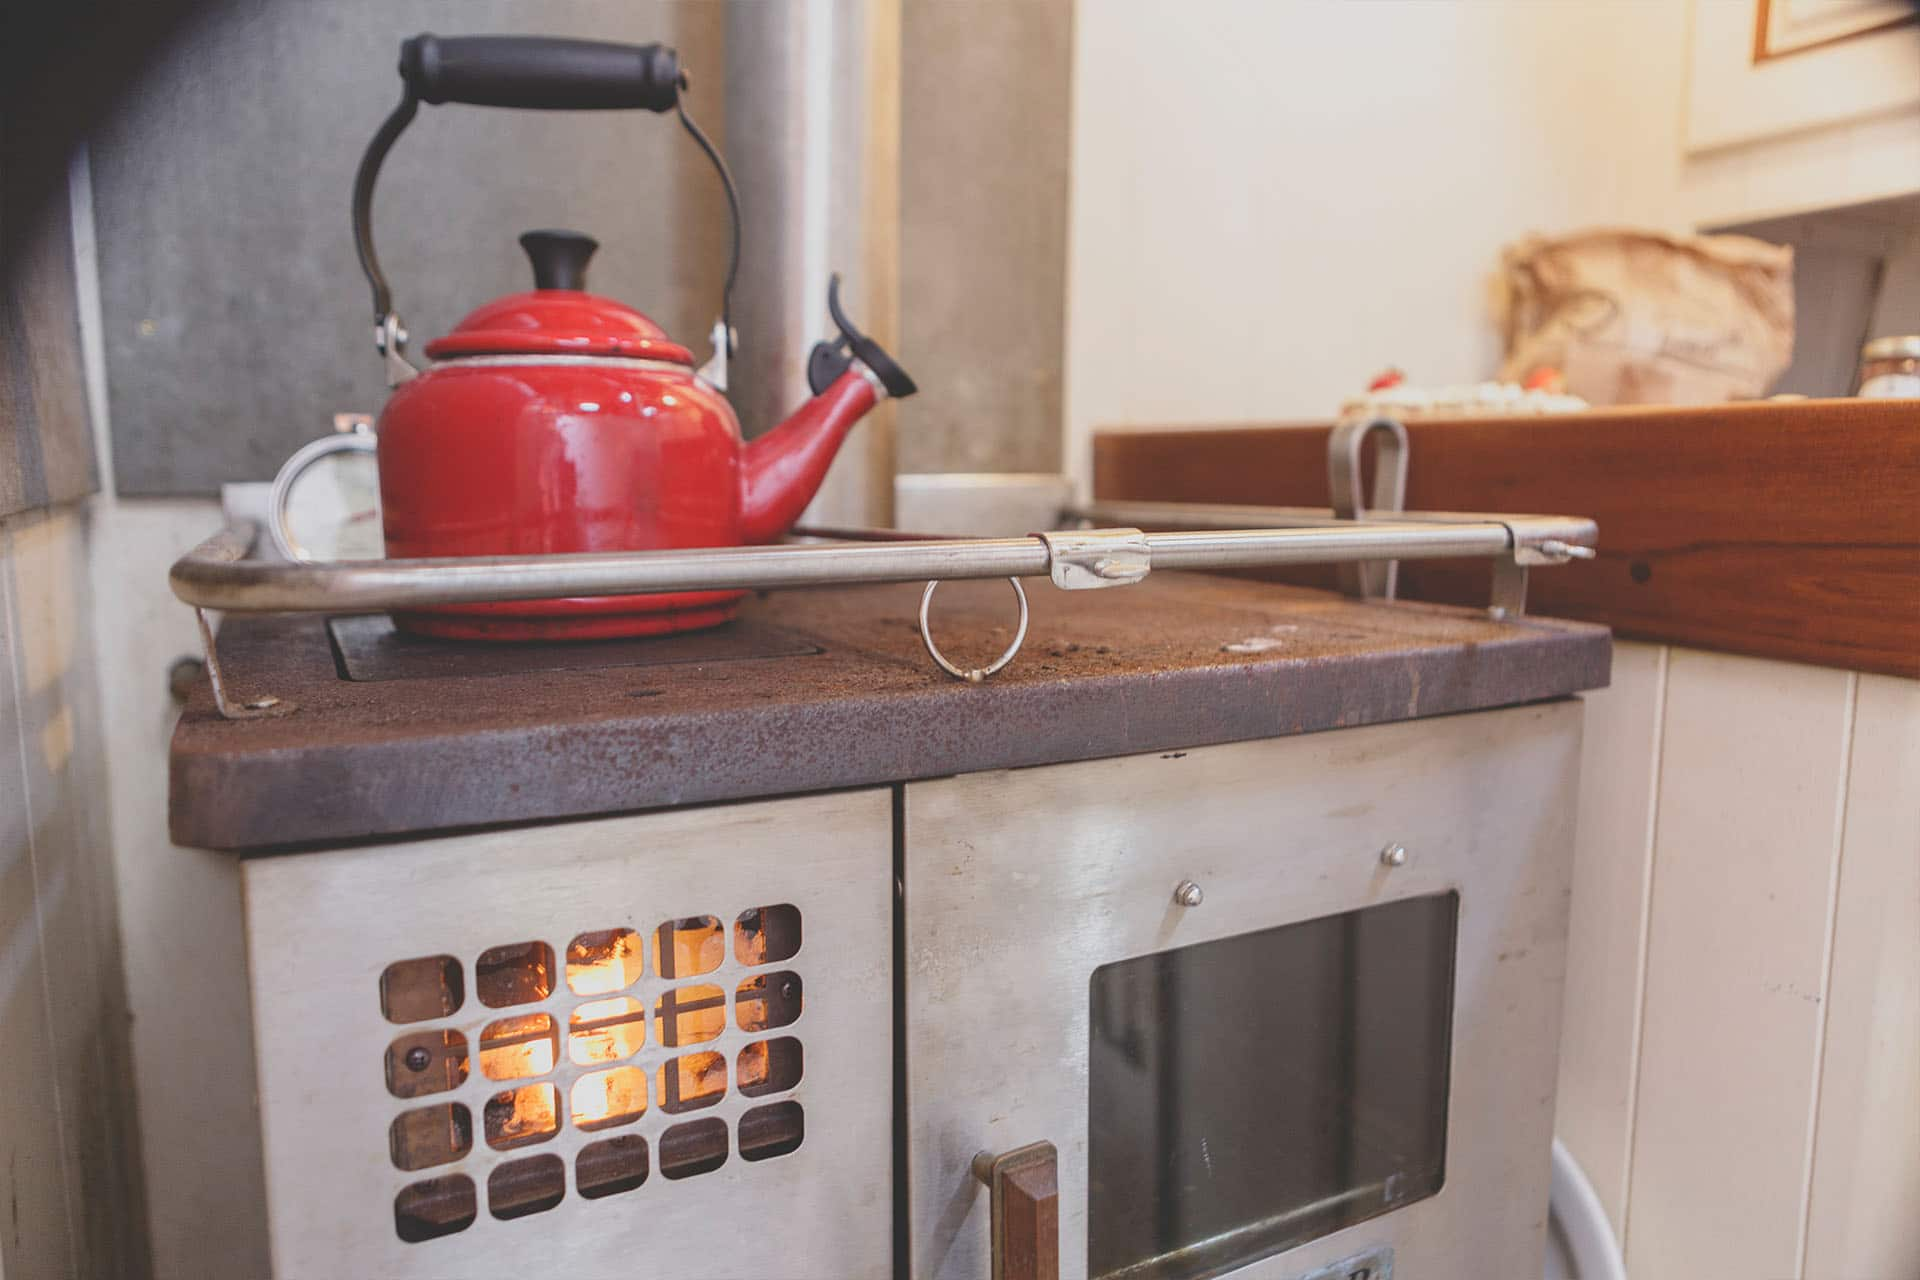 ESCAPE galley stove